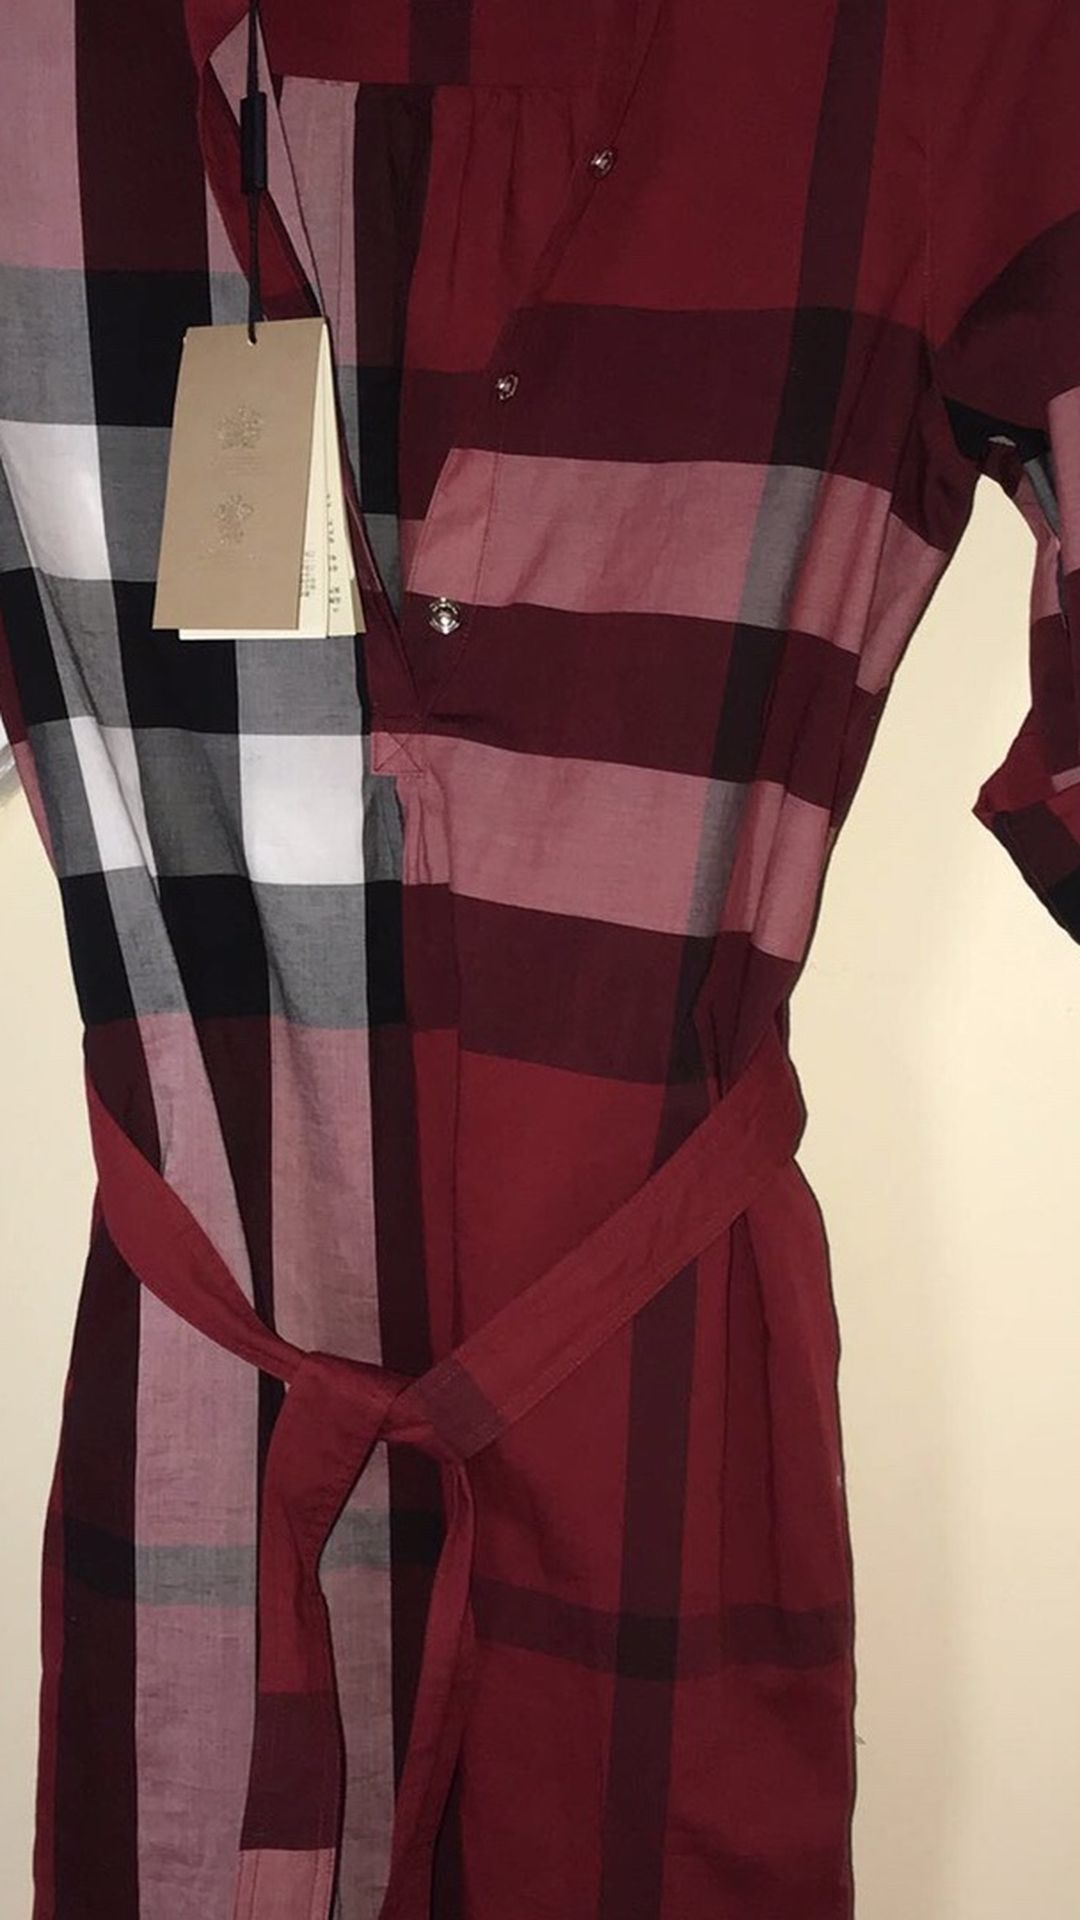 Burberry dress NEVER WORN! Was $600 Asking For $300 OBO